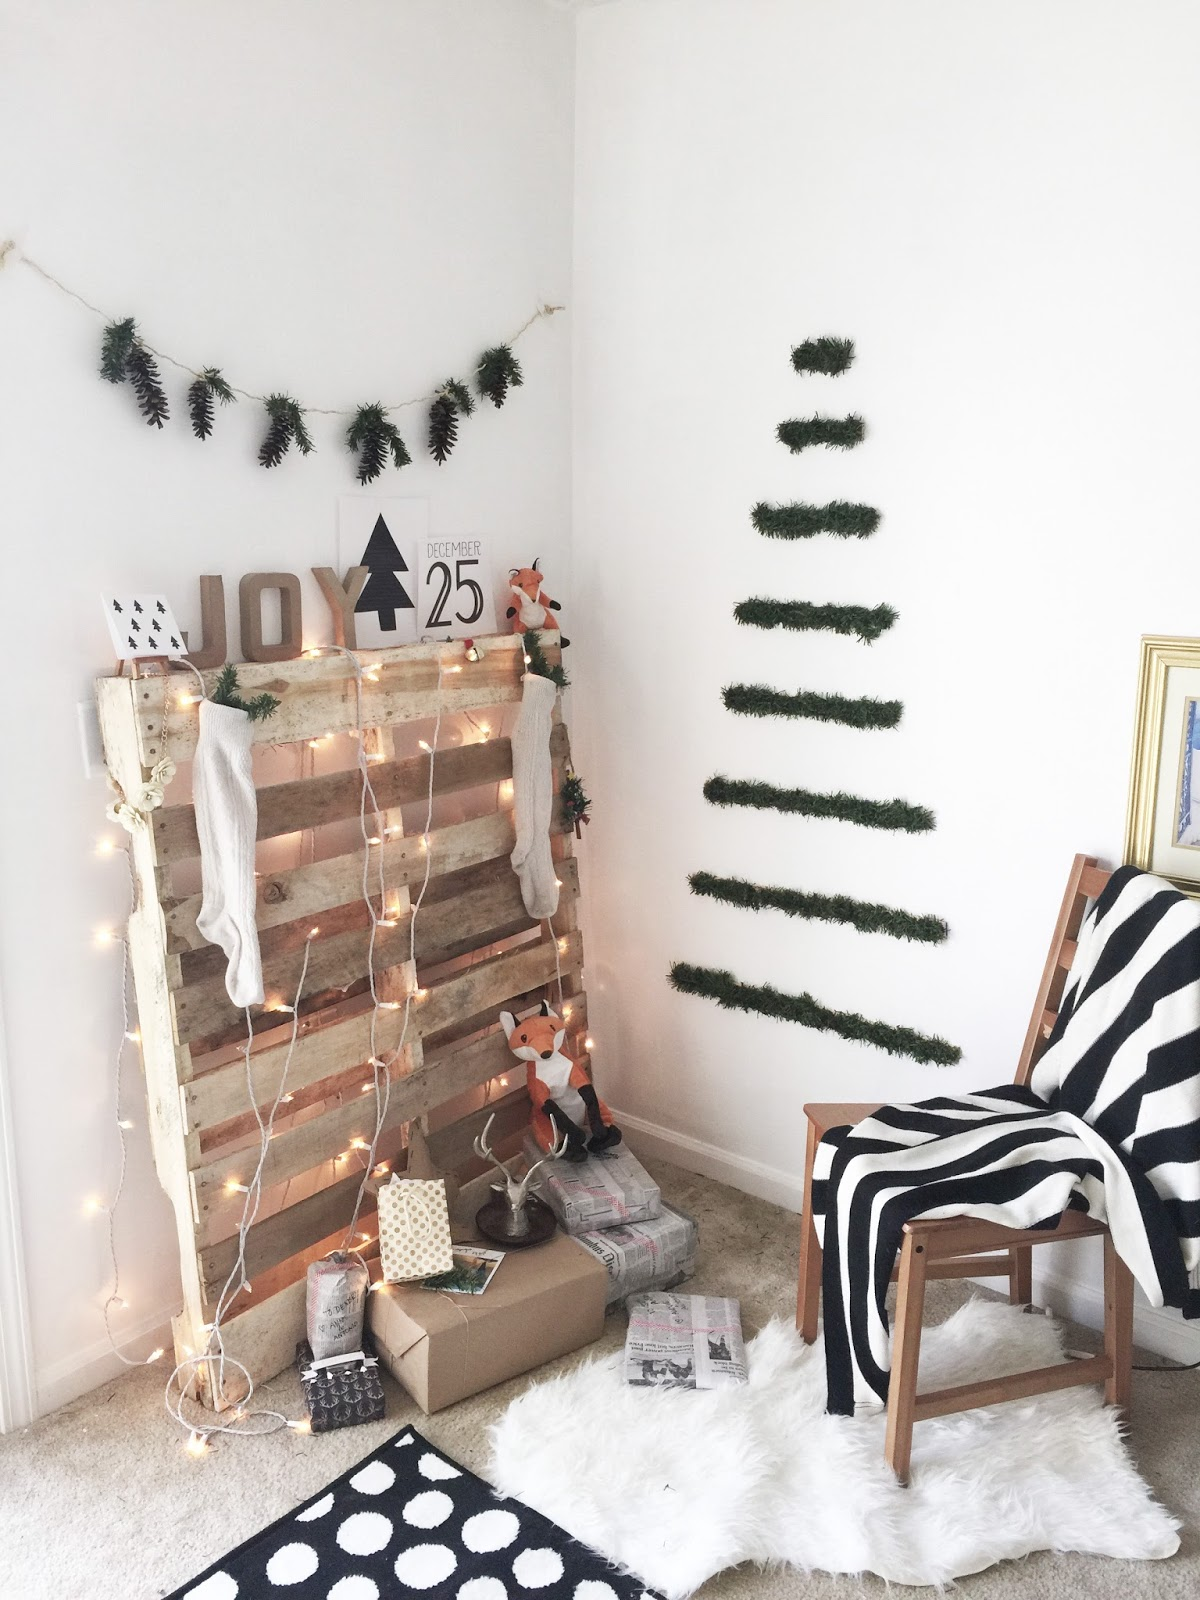 Our Upcycled Christmas